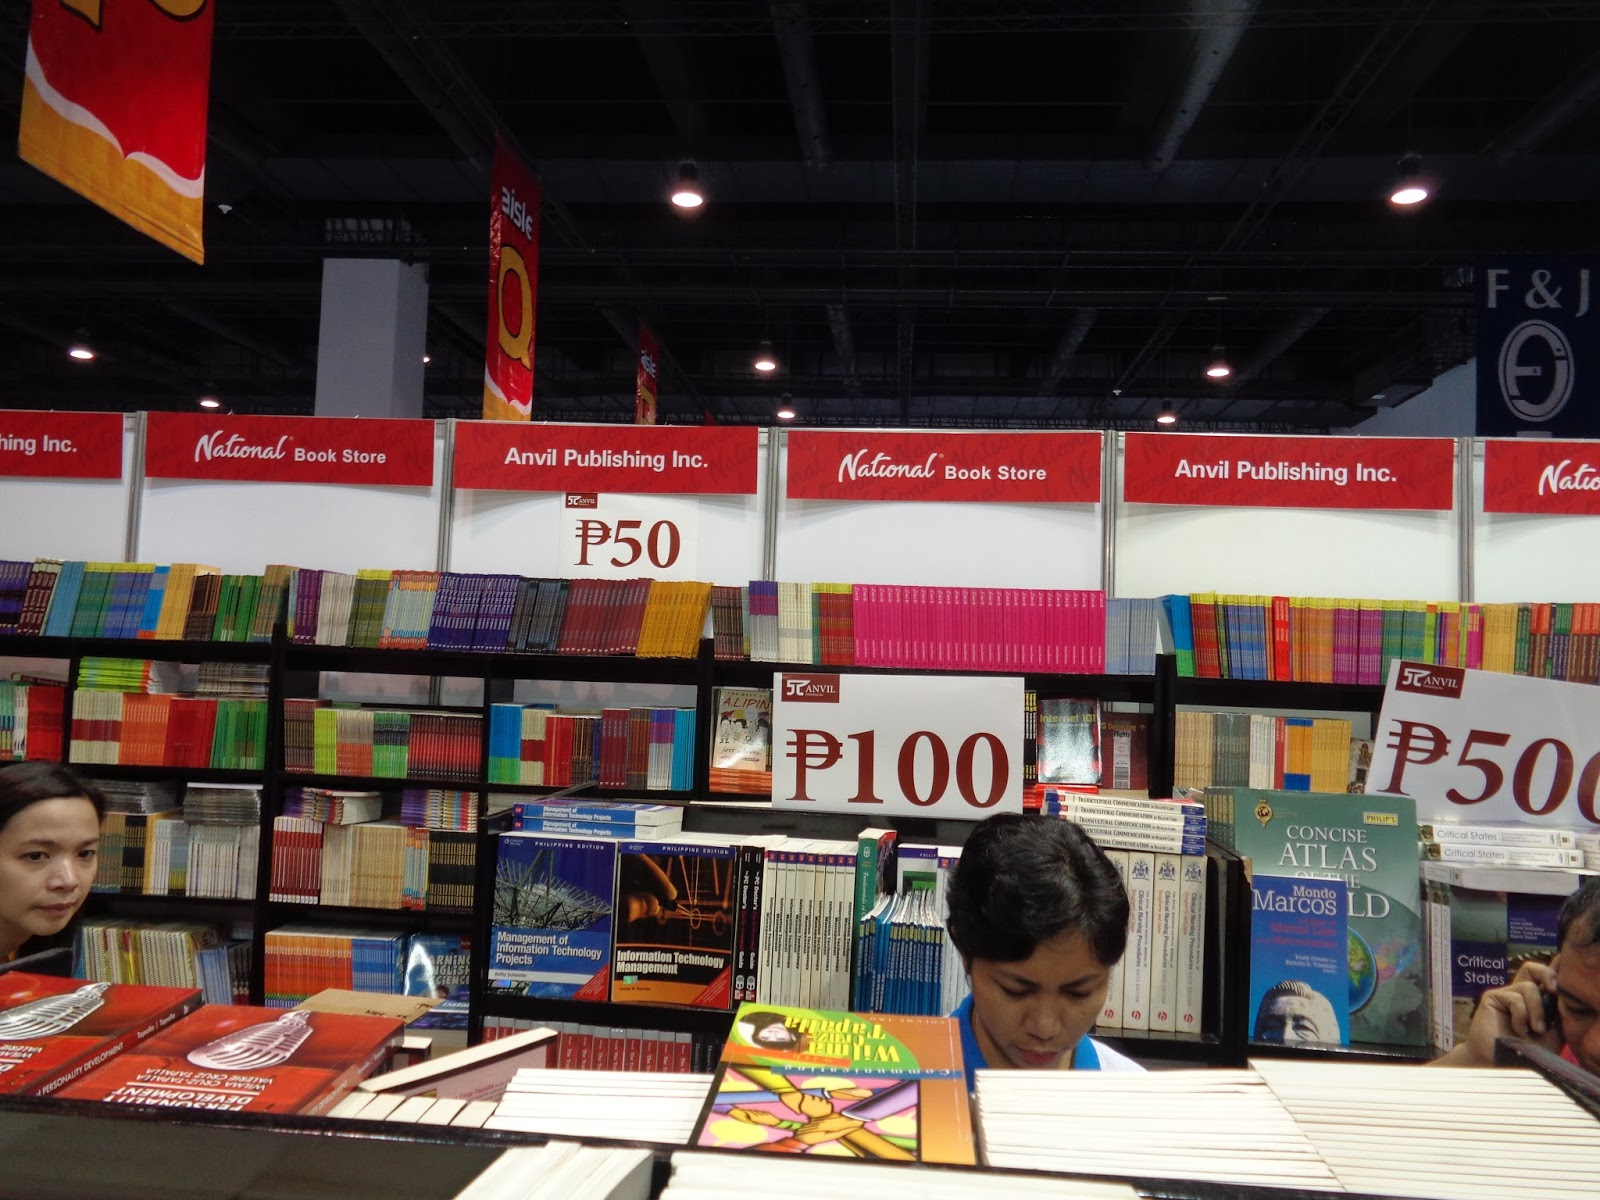 And The Christian Books For Children Are So Cheap Going As Low Php 500 A Good Deal If You Want To Raise Your Child